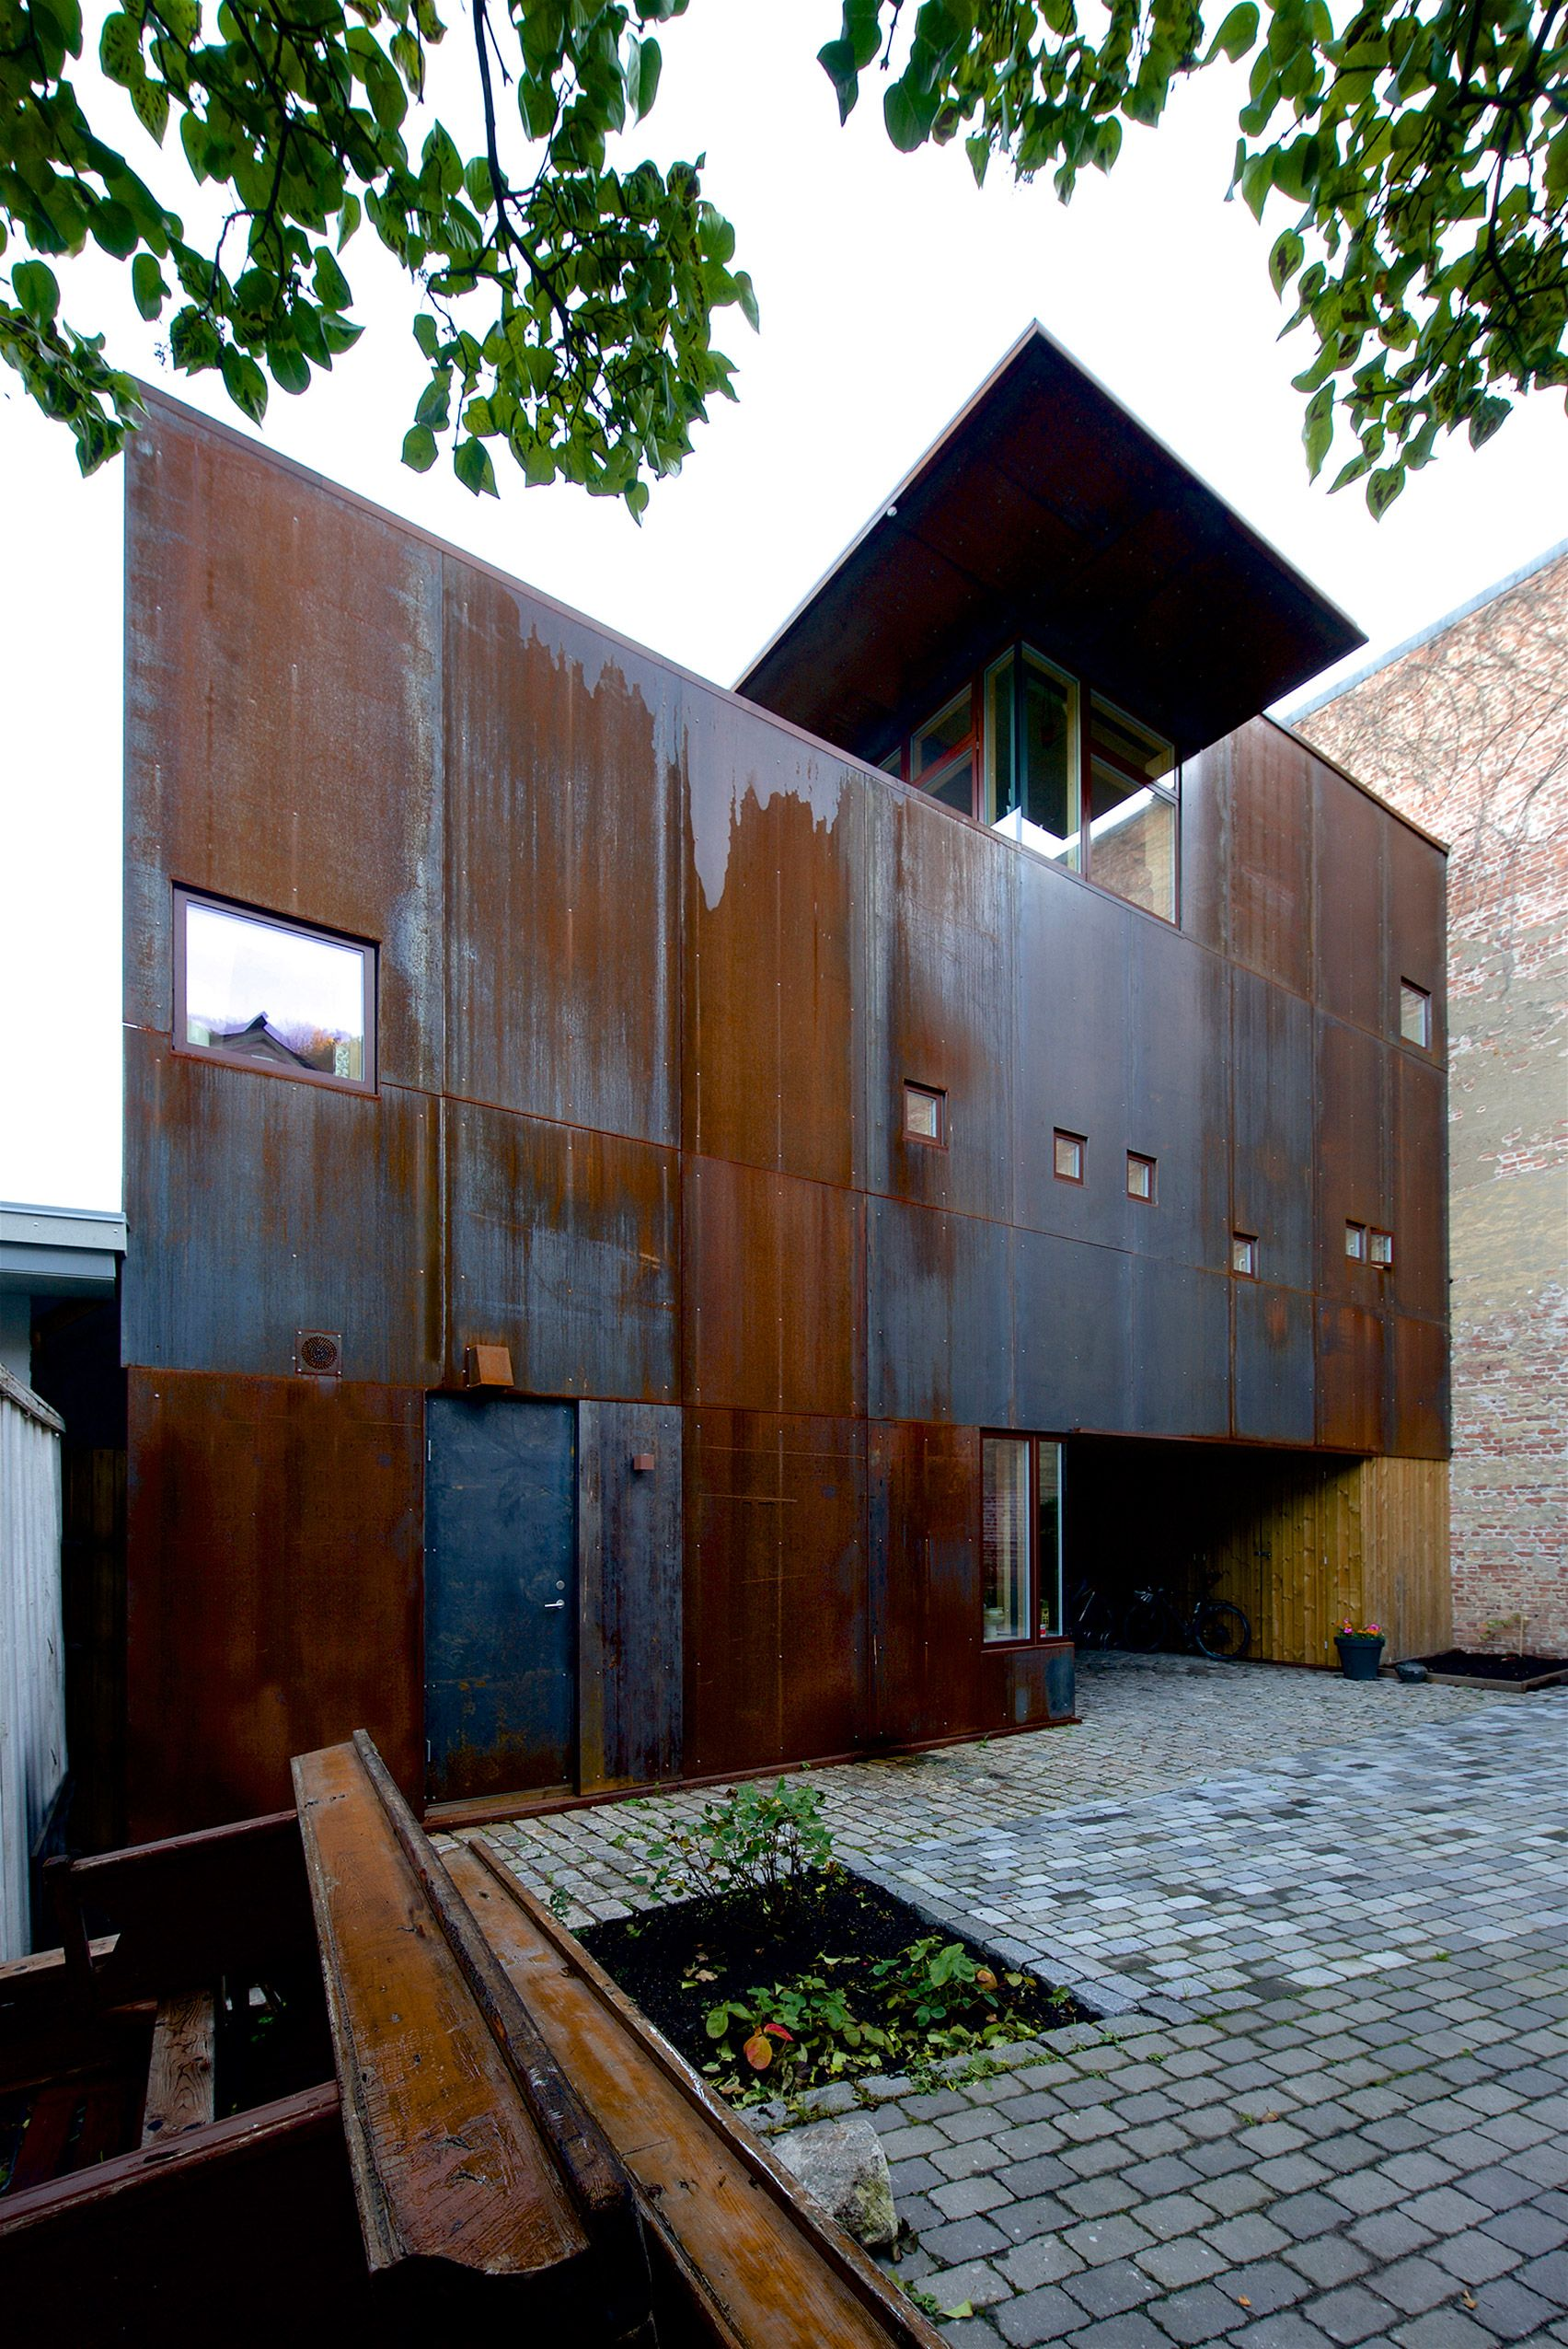 Corten Standing Seam Rusted Standing Seam In Corten Or Bare Steel At Cortenroofing Com Roof Cladding Cladding Systems Corten